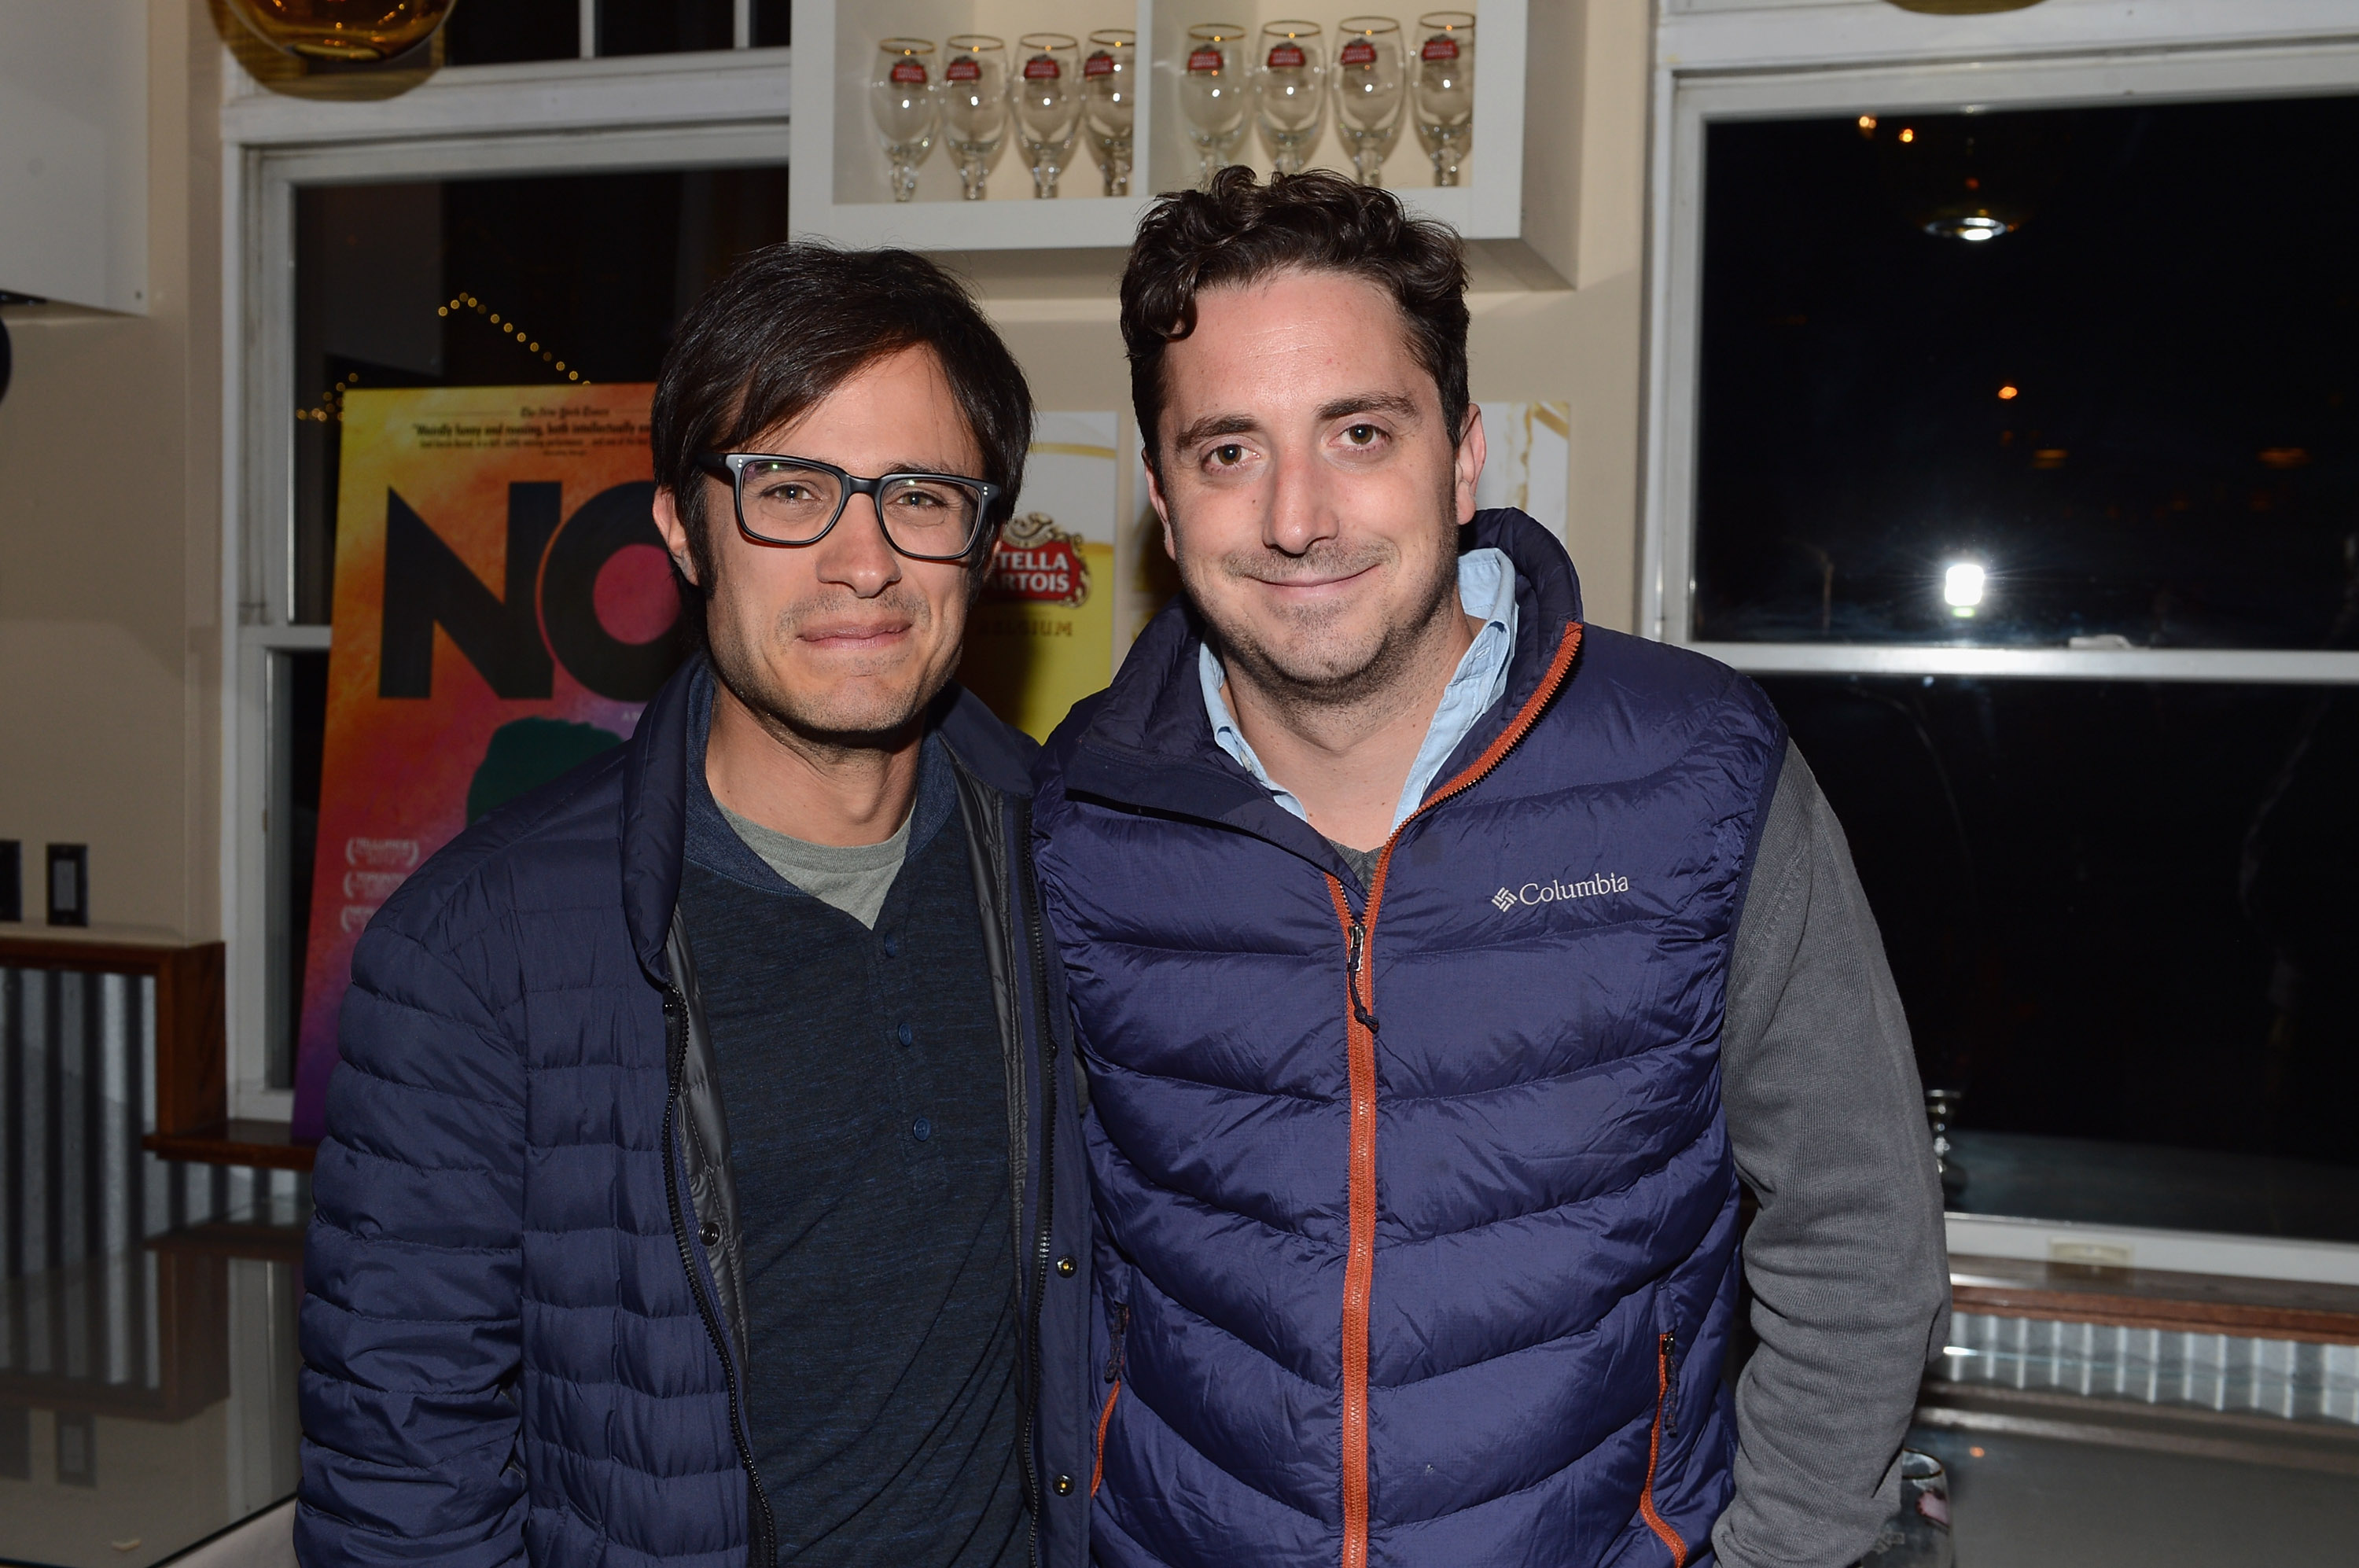 Chilean Director Pablo Larraín Is Back With Another Movie Starring Gael García Bernal